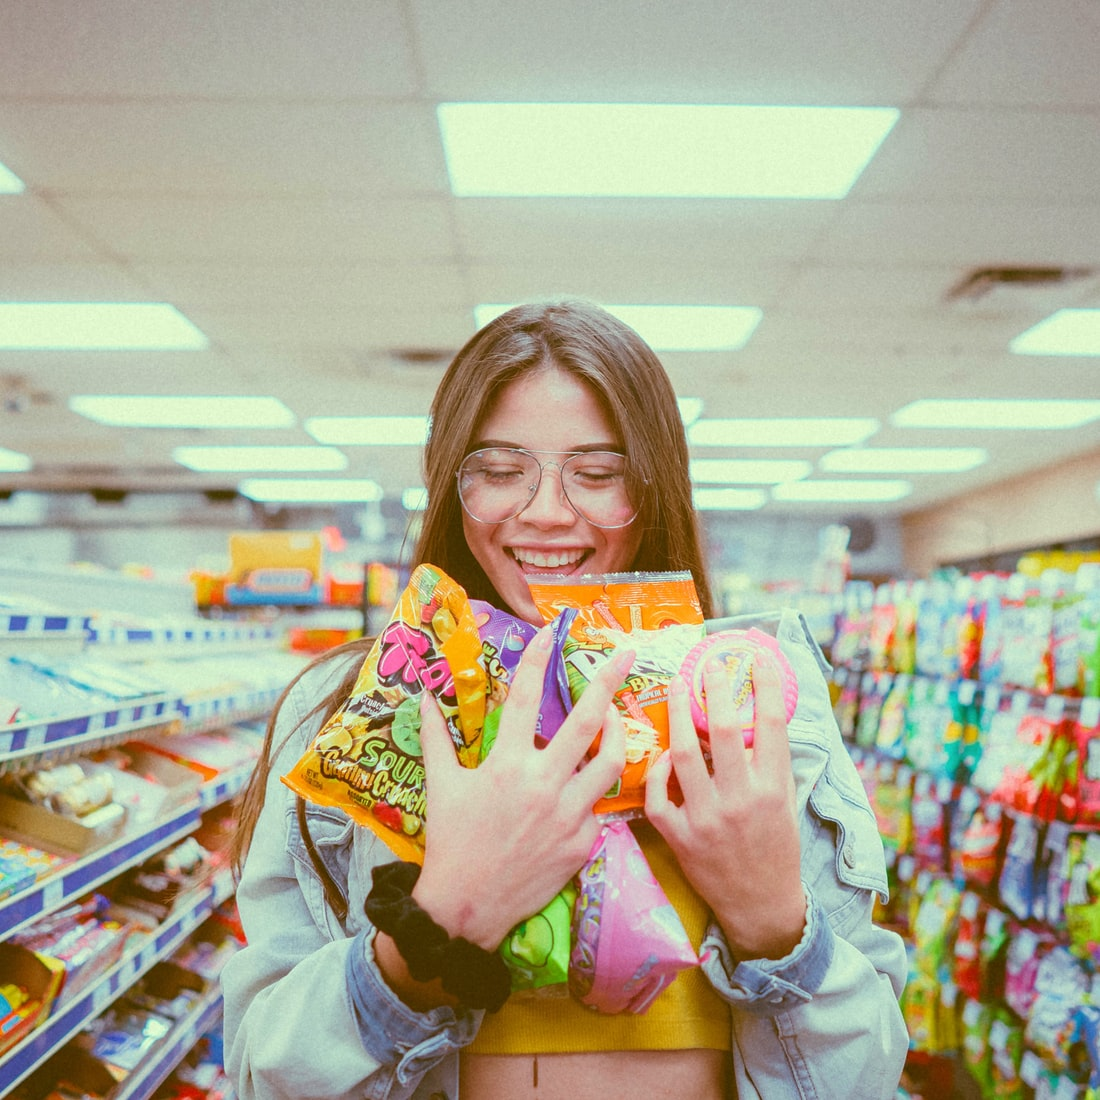 Young brunette woman smiling while holding pack of candies inside grocery store